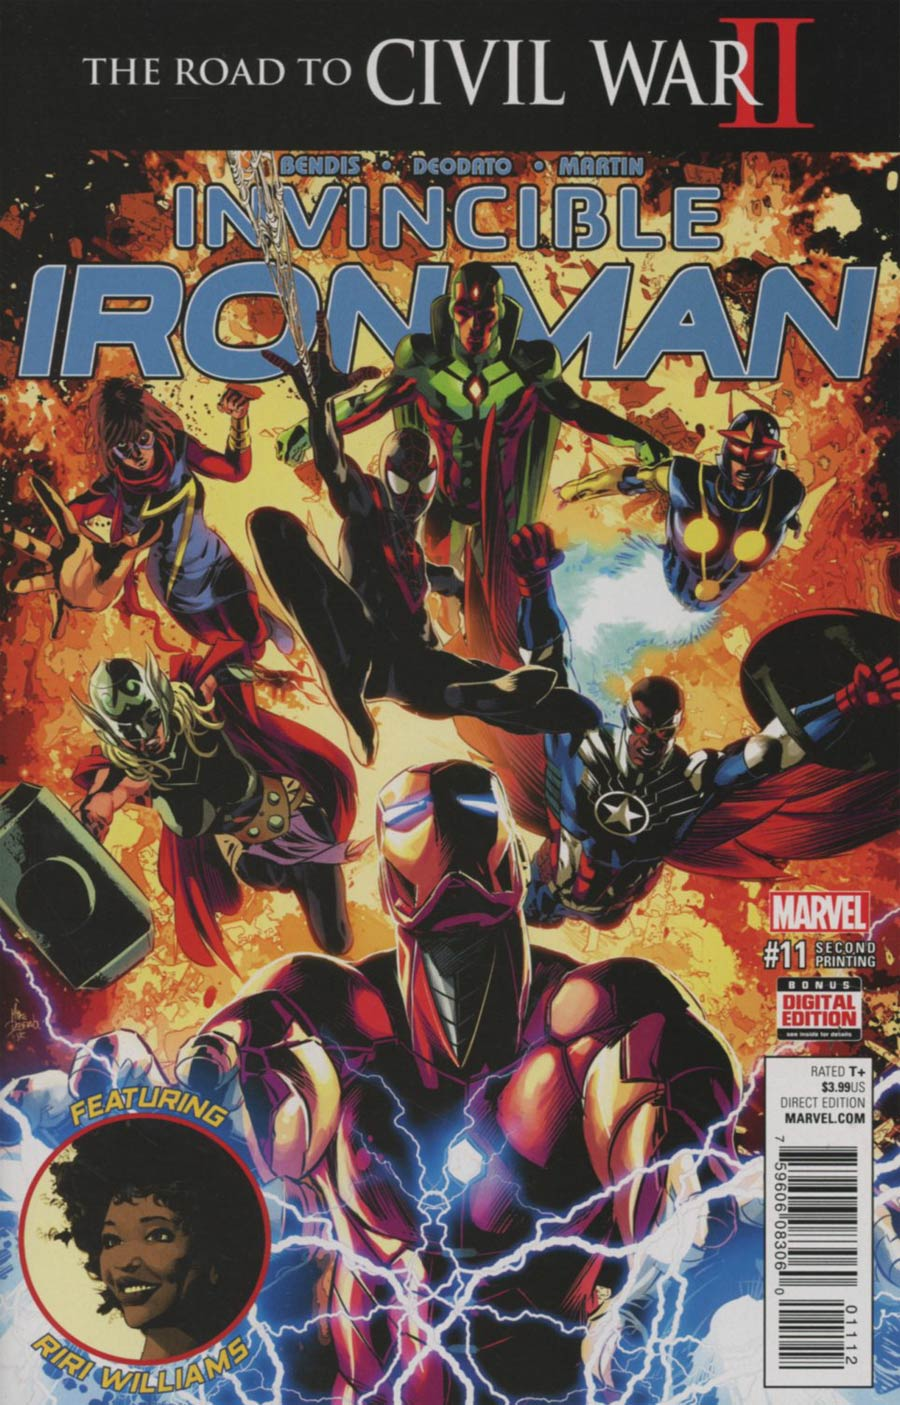 Invincible Iron Man Vol 2 #11 Cover C 2nd Ptg Mike Deodato Variant Cover (Road To Civil War II Tie-In)